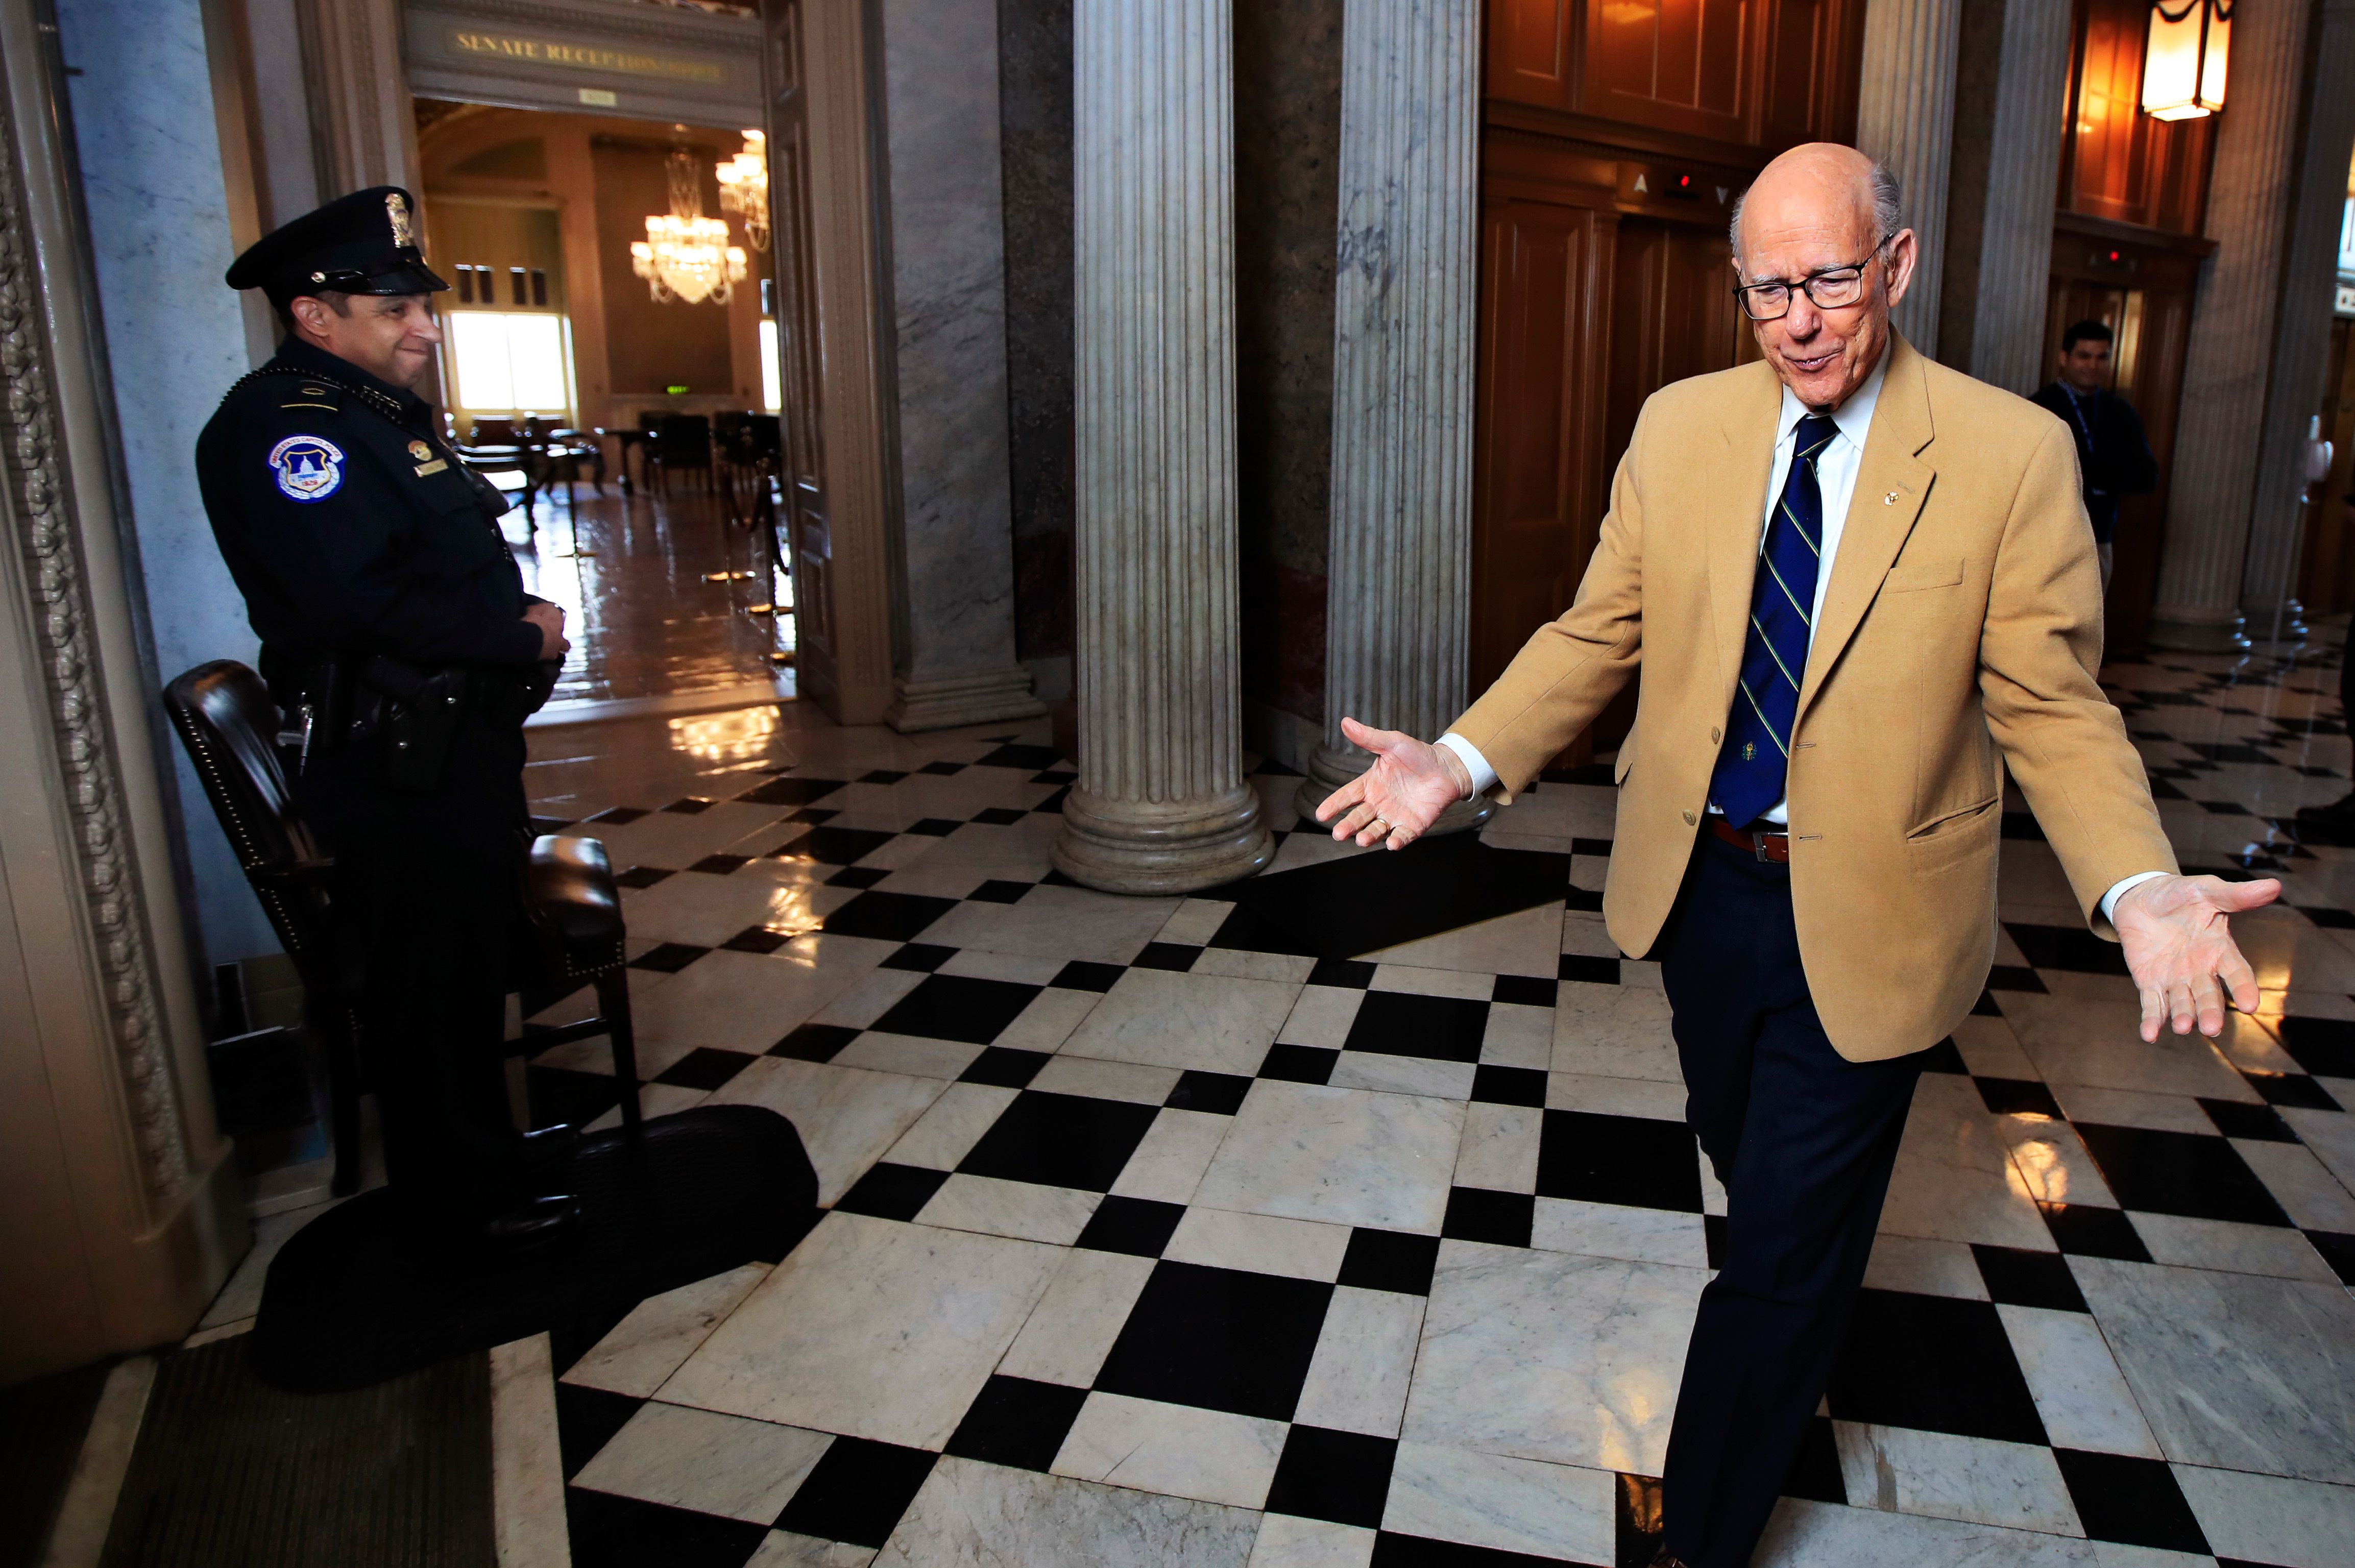 Sen. Pat Roberts, R-Kan., right, greets U.S. Capitol Police Officer John Cruz and Senate floor doorkeeper Gwen Barnhardt as he walks the empty hallways of Capitol Hill in Washington, Monday, Dec. 24, 2018. Roberts was on Capitol Hill for a pro forma session, a brief meeting of the Senate only a few minutes in duration. Both sides in the long-running fight over funding President Donald Trump's U.S.-Mexico border wall appear to have moved toward each other, but a shutdown of one-fourth of the federal government entered Christmas without a clear resolution in sight. (AP Photo/Manuel Balce Ceneta)